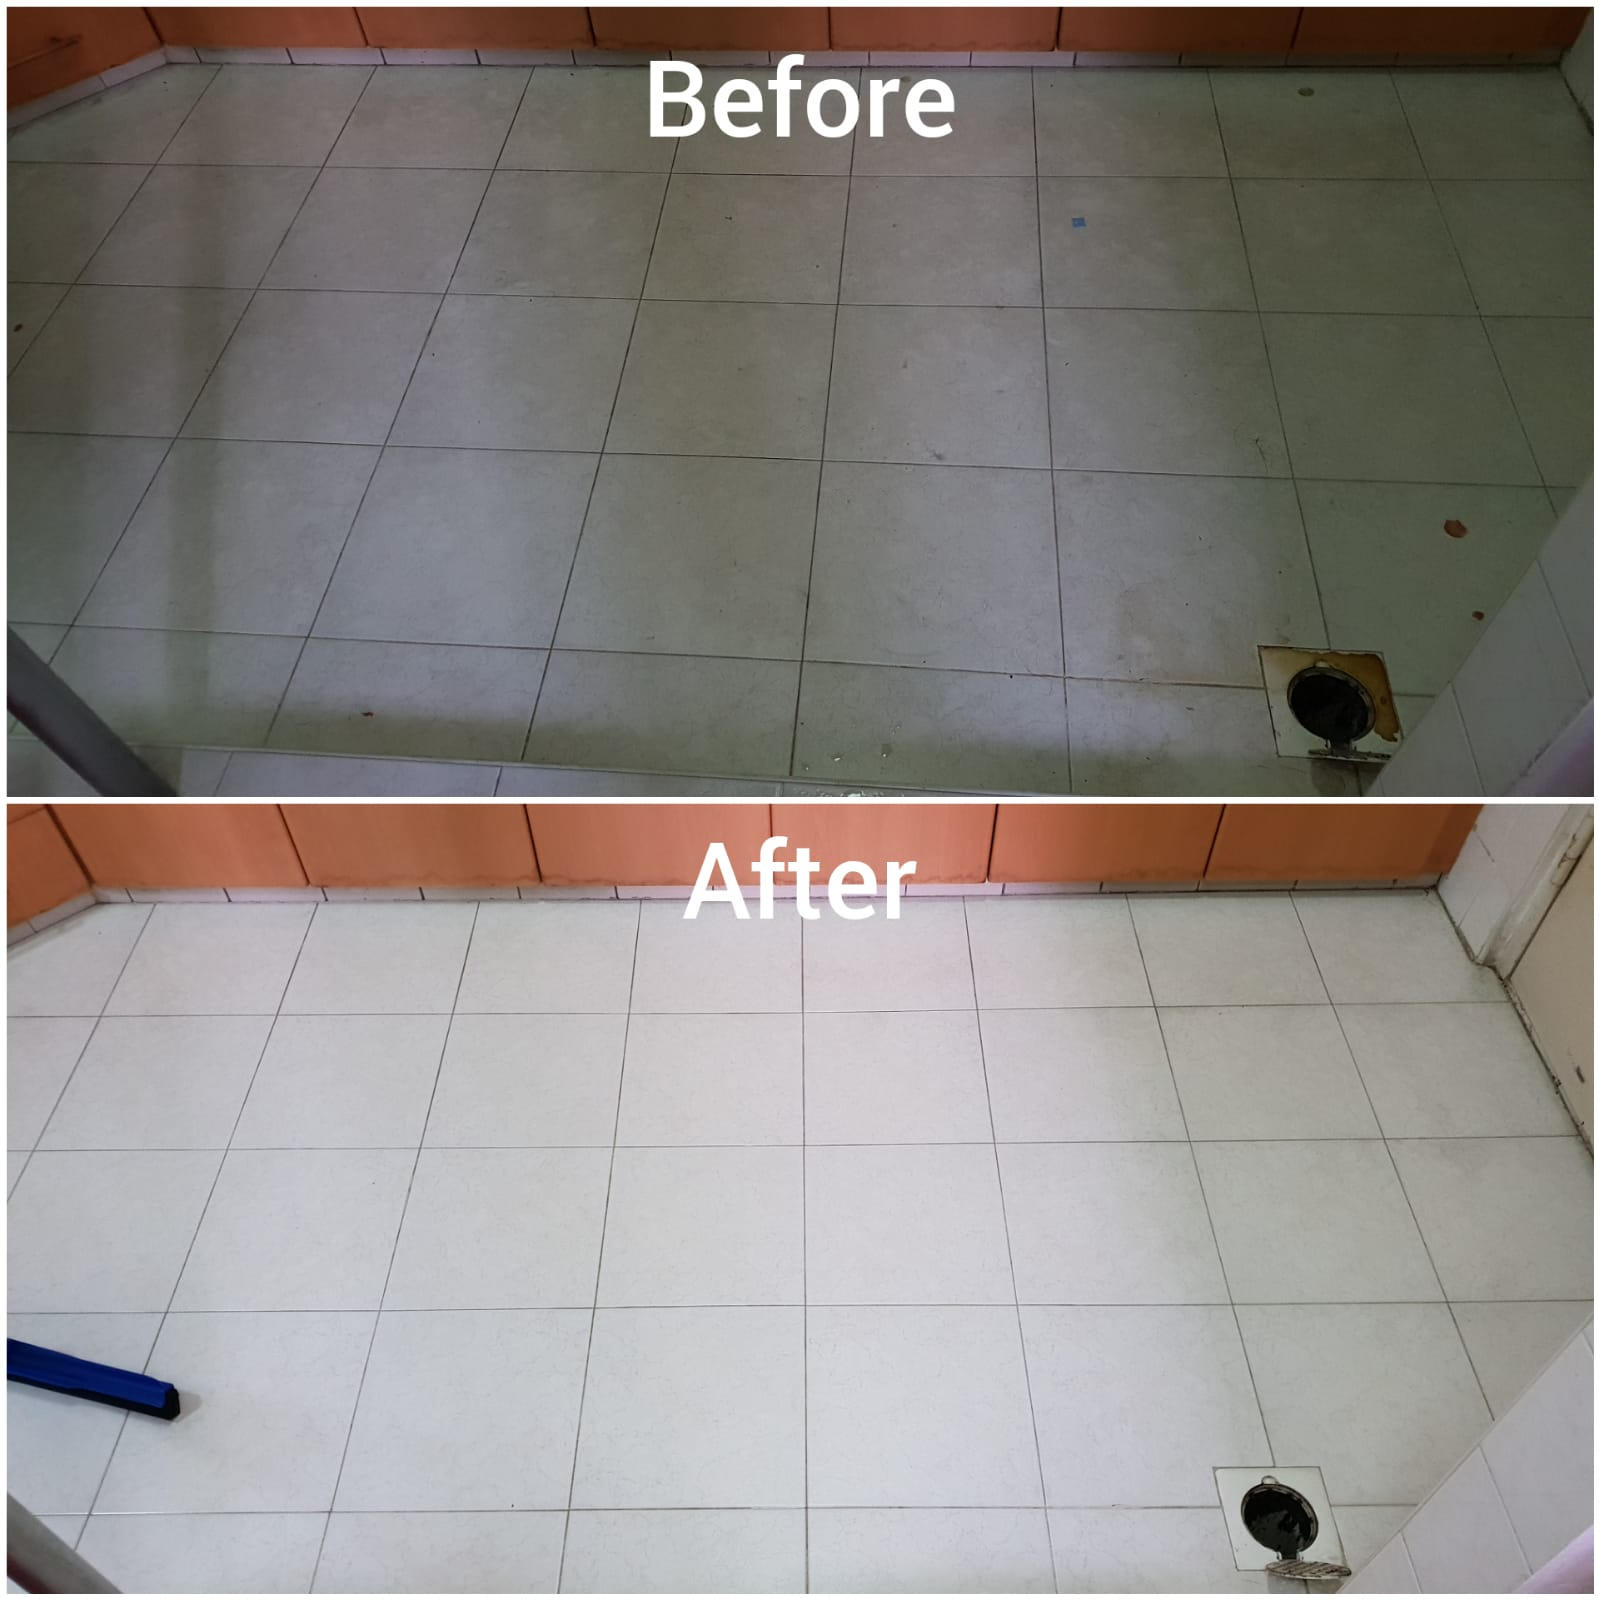 cleaning-services-singapore-price